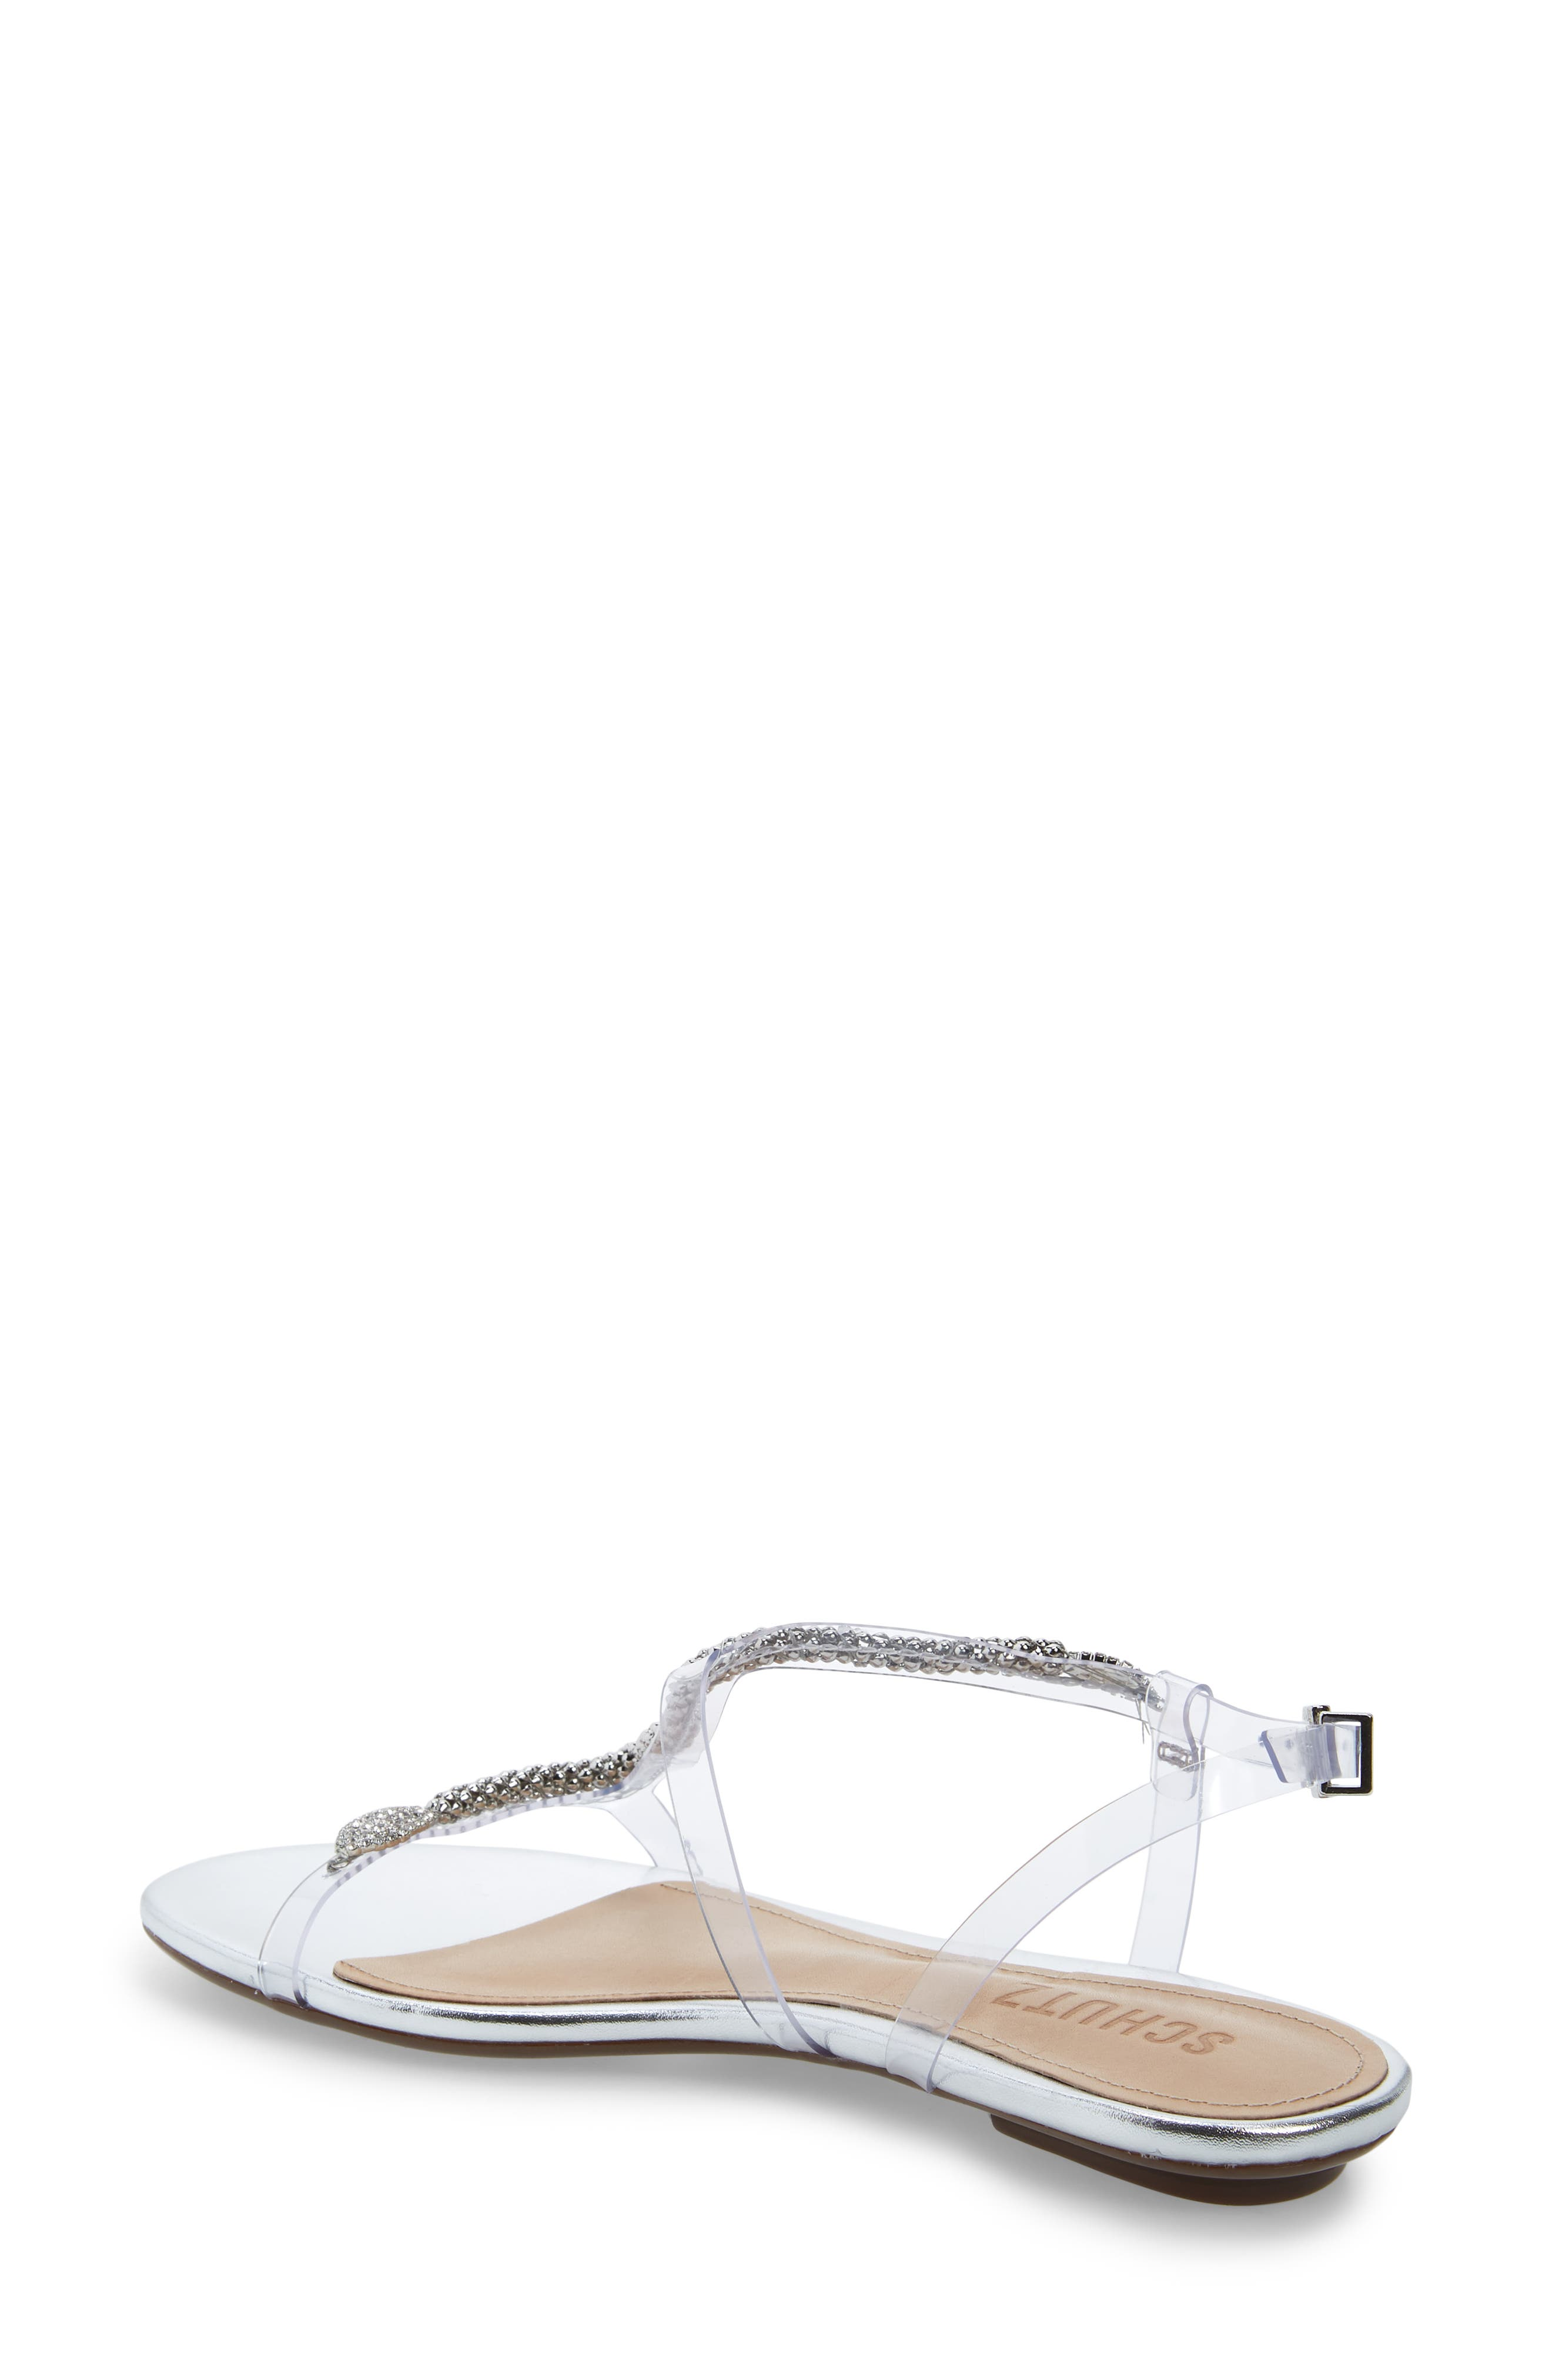 Gabbyl Embellished Sandal,                             Alternate thumbnail 2, color,                             PRATA